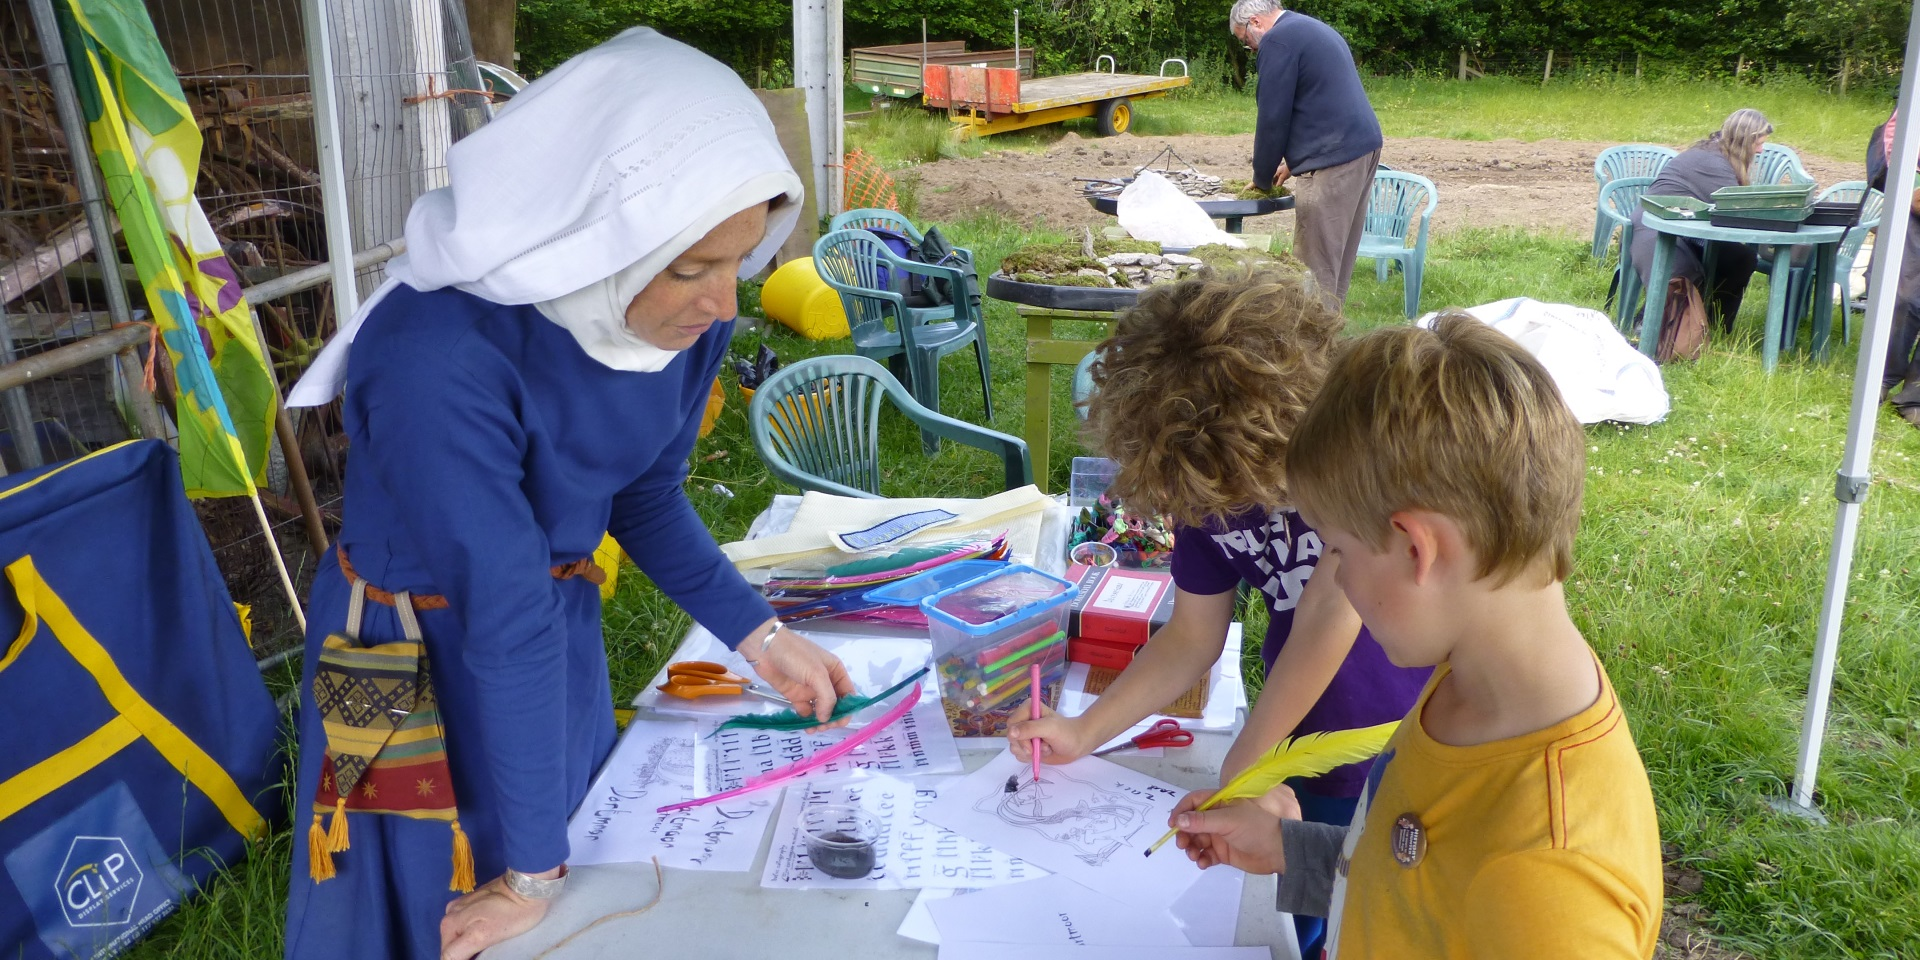 Medieval open day event